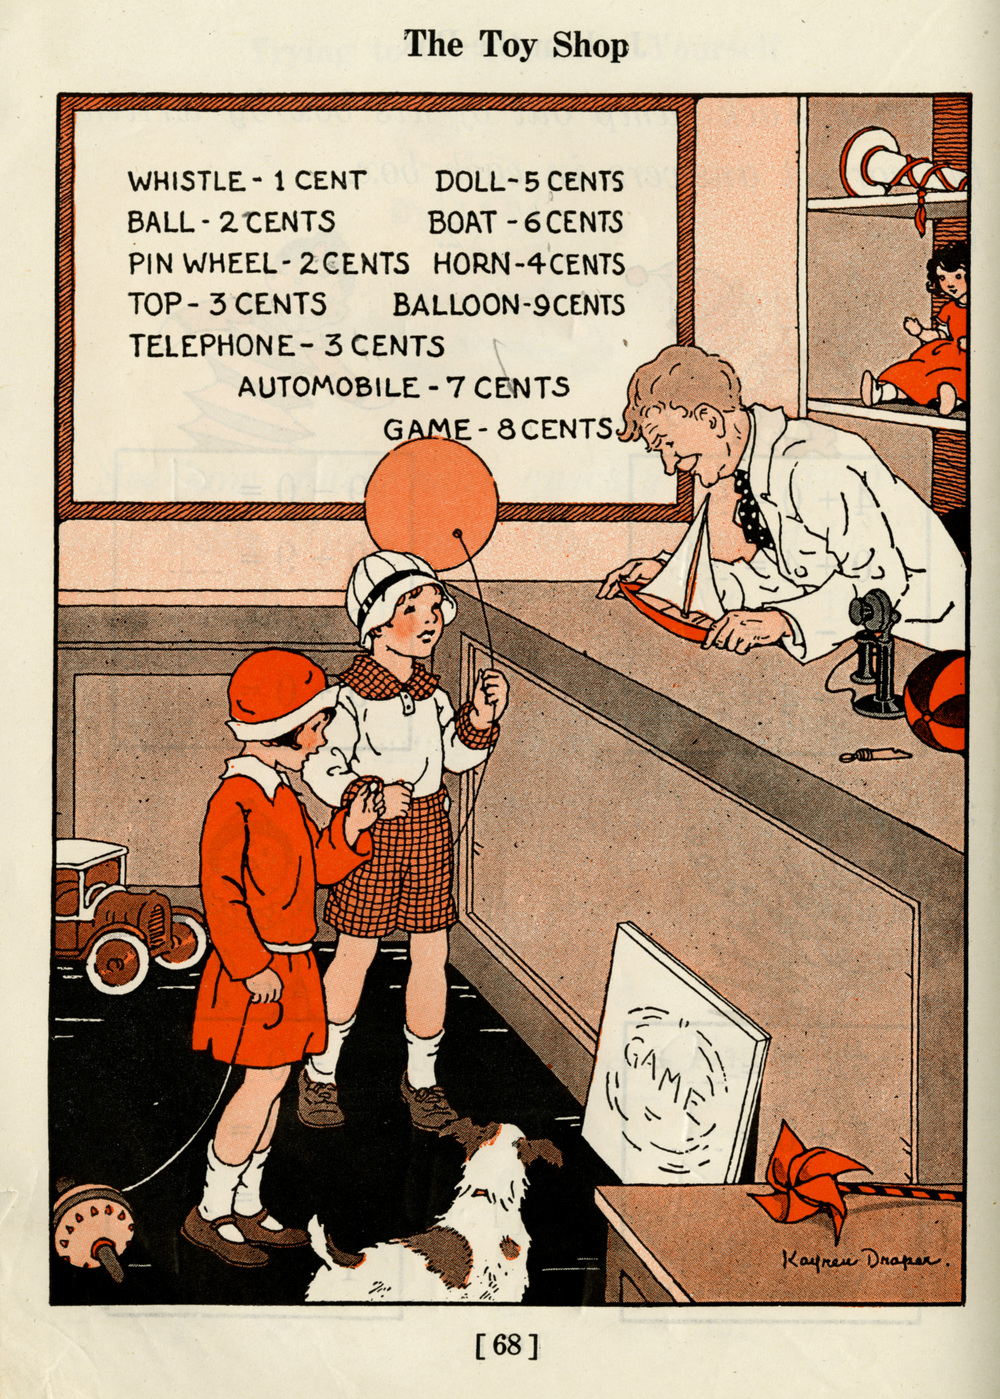 Kay Draper, The Toy Shop, from The Alpha Individual Arithmetics, 1929. Draper's two-color work for this schoolbook project is more subtly manifested, due to specifications permitting modulated optical values and tonalities.